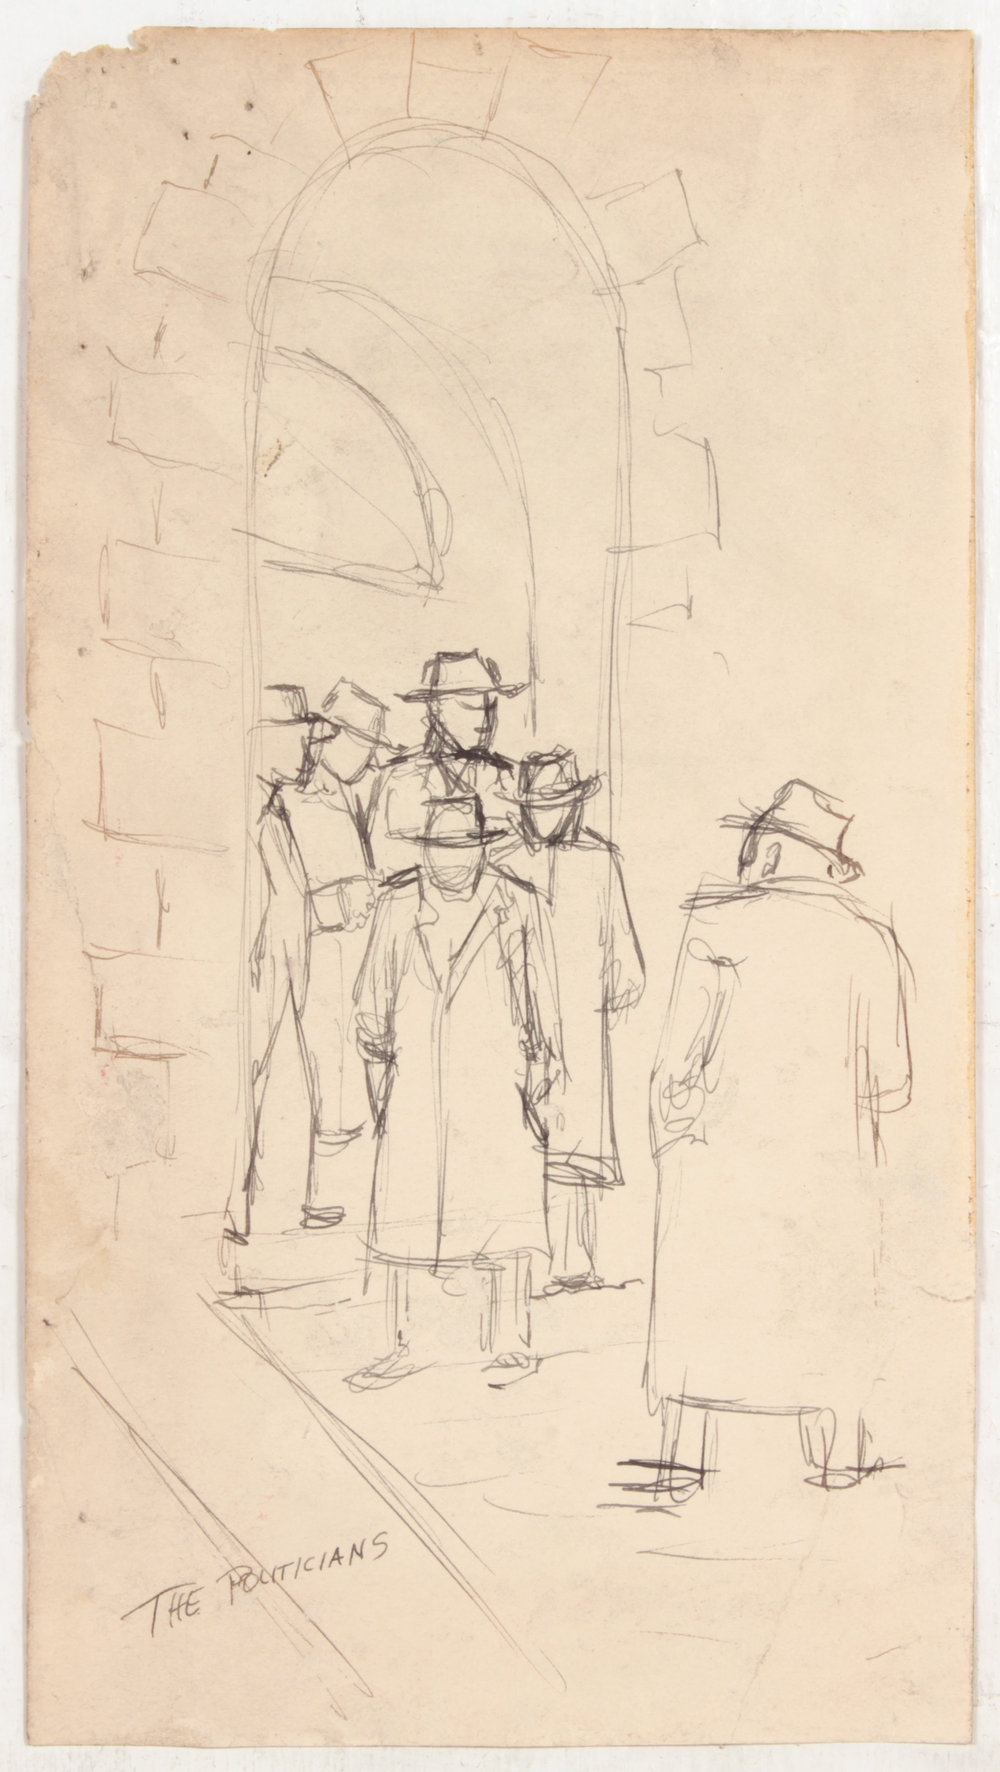 19. 1948-49, The Politicians, Pen and Ink on Paper, 10.50x5.75, PPS 1443.JPG